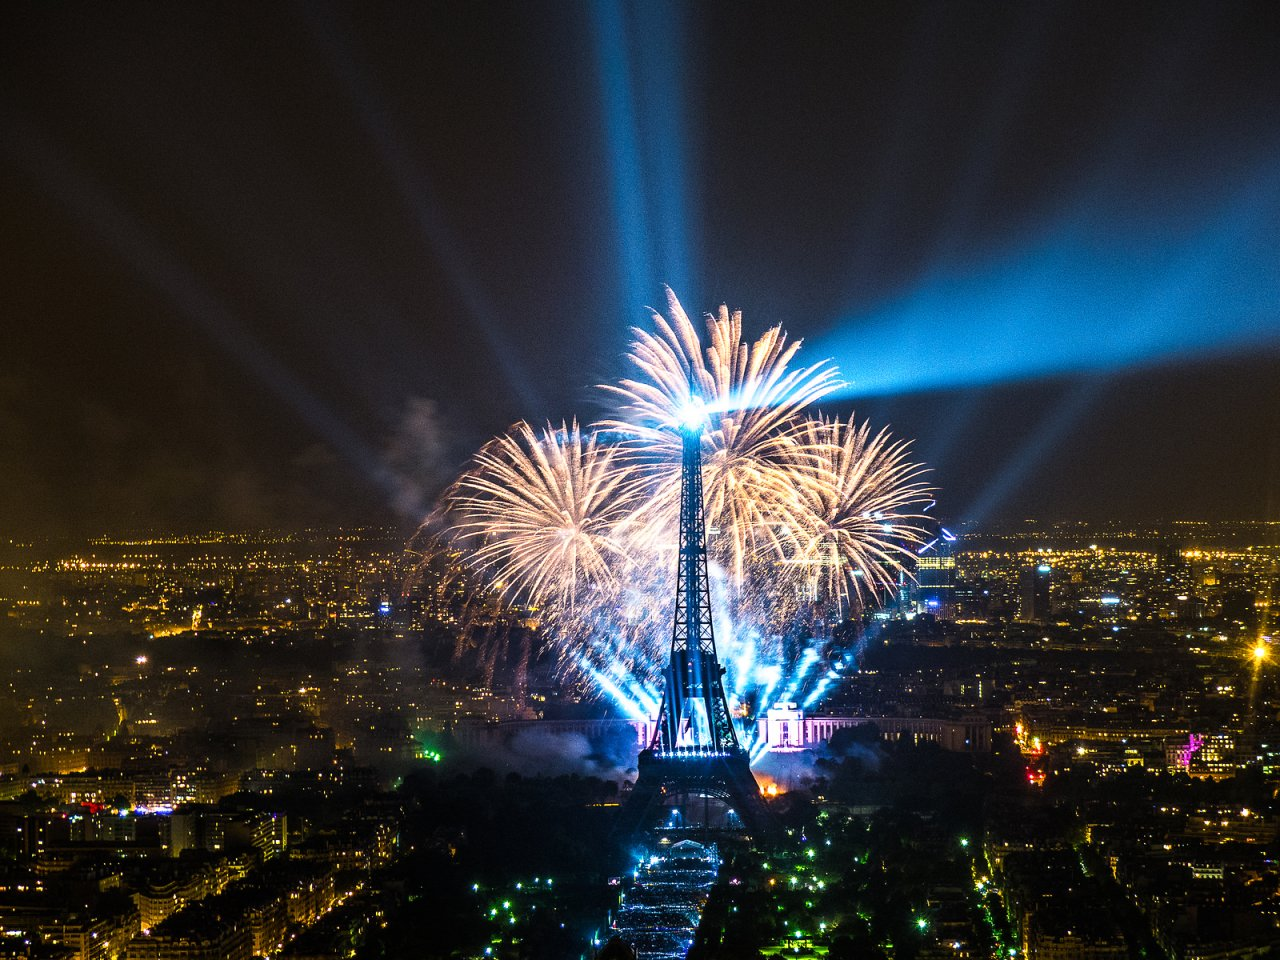 Eiffel Tower, Places to visit in Paris, France